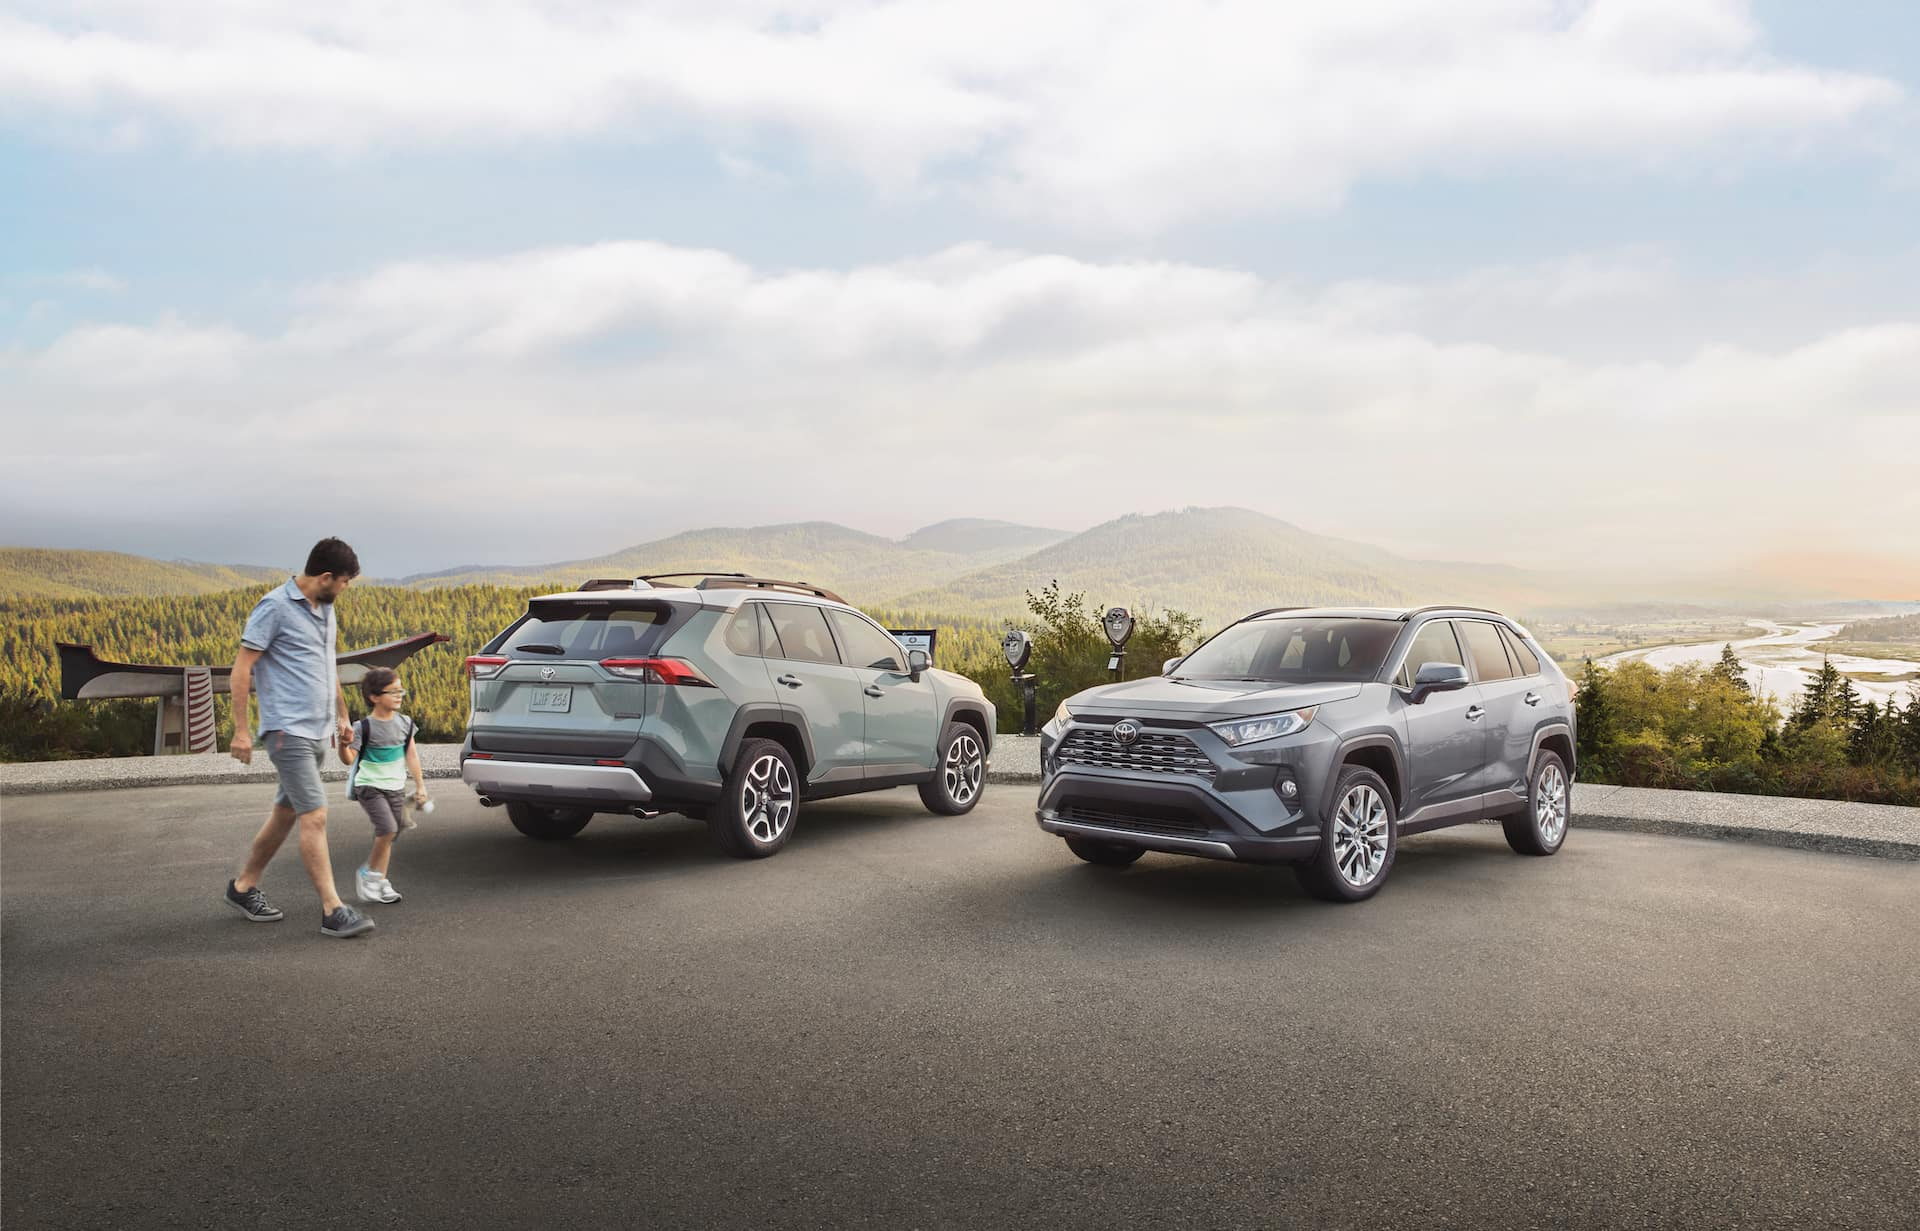 Halterman's Toyota is a Toyota Dealership near Neola, PA | Father and son walking by two 2020 Toyota RAV 4 vehicles parked at scenic overlook